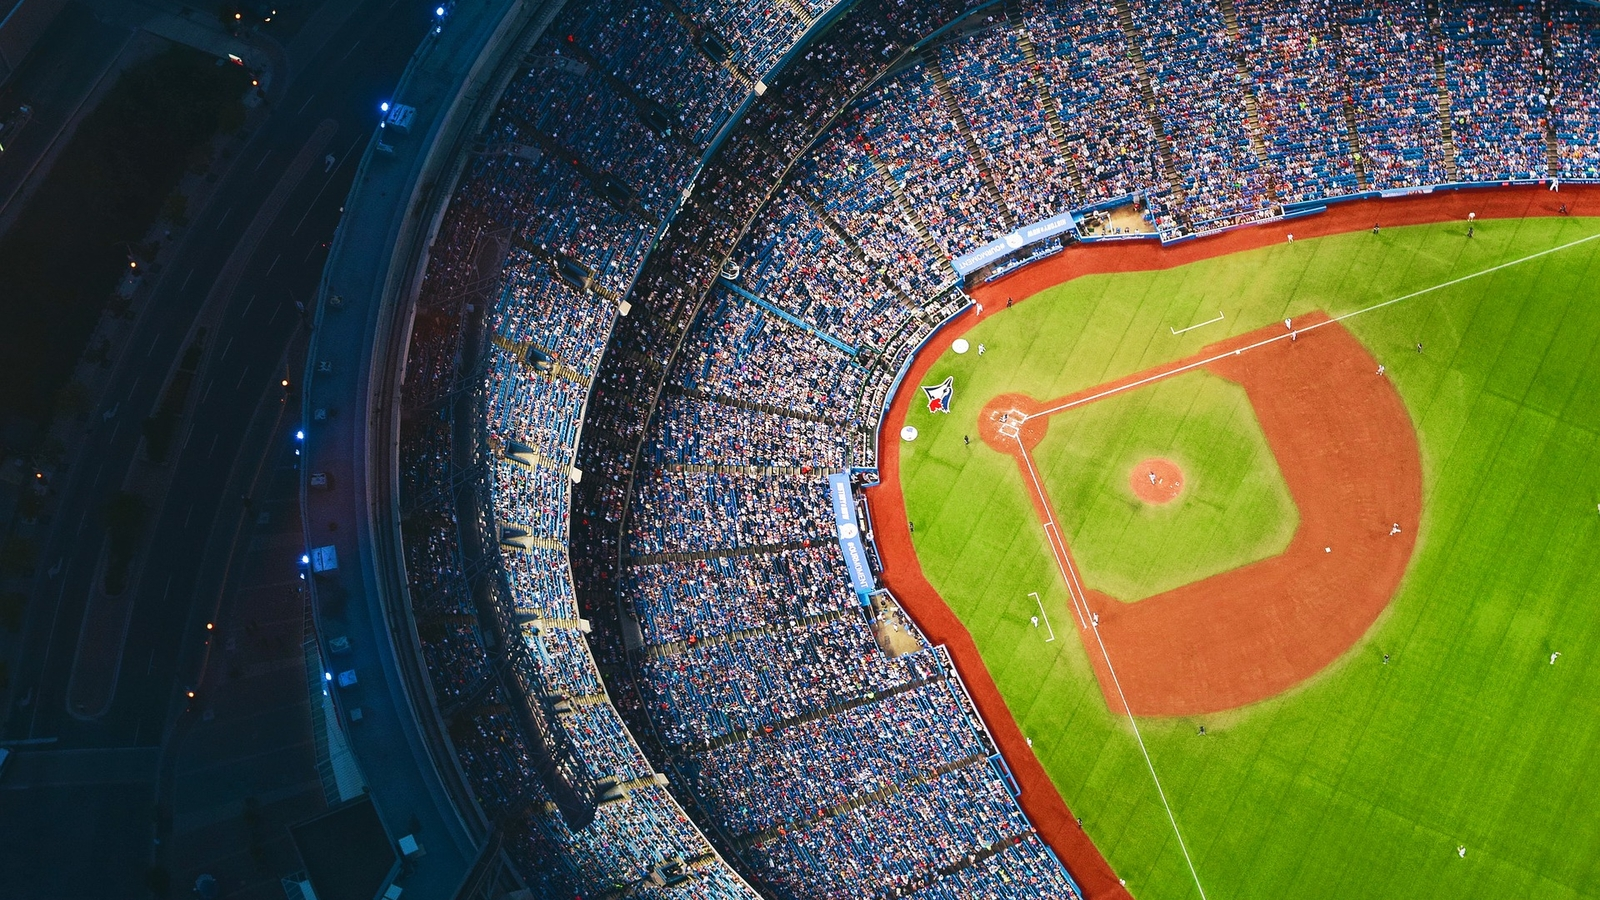 aerial photo of a baseball stadium